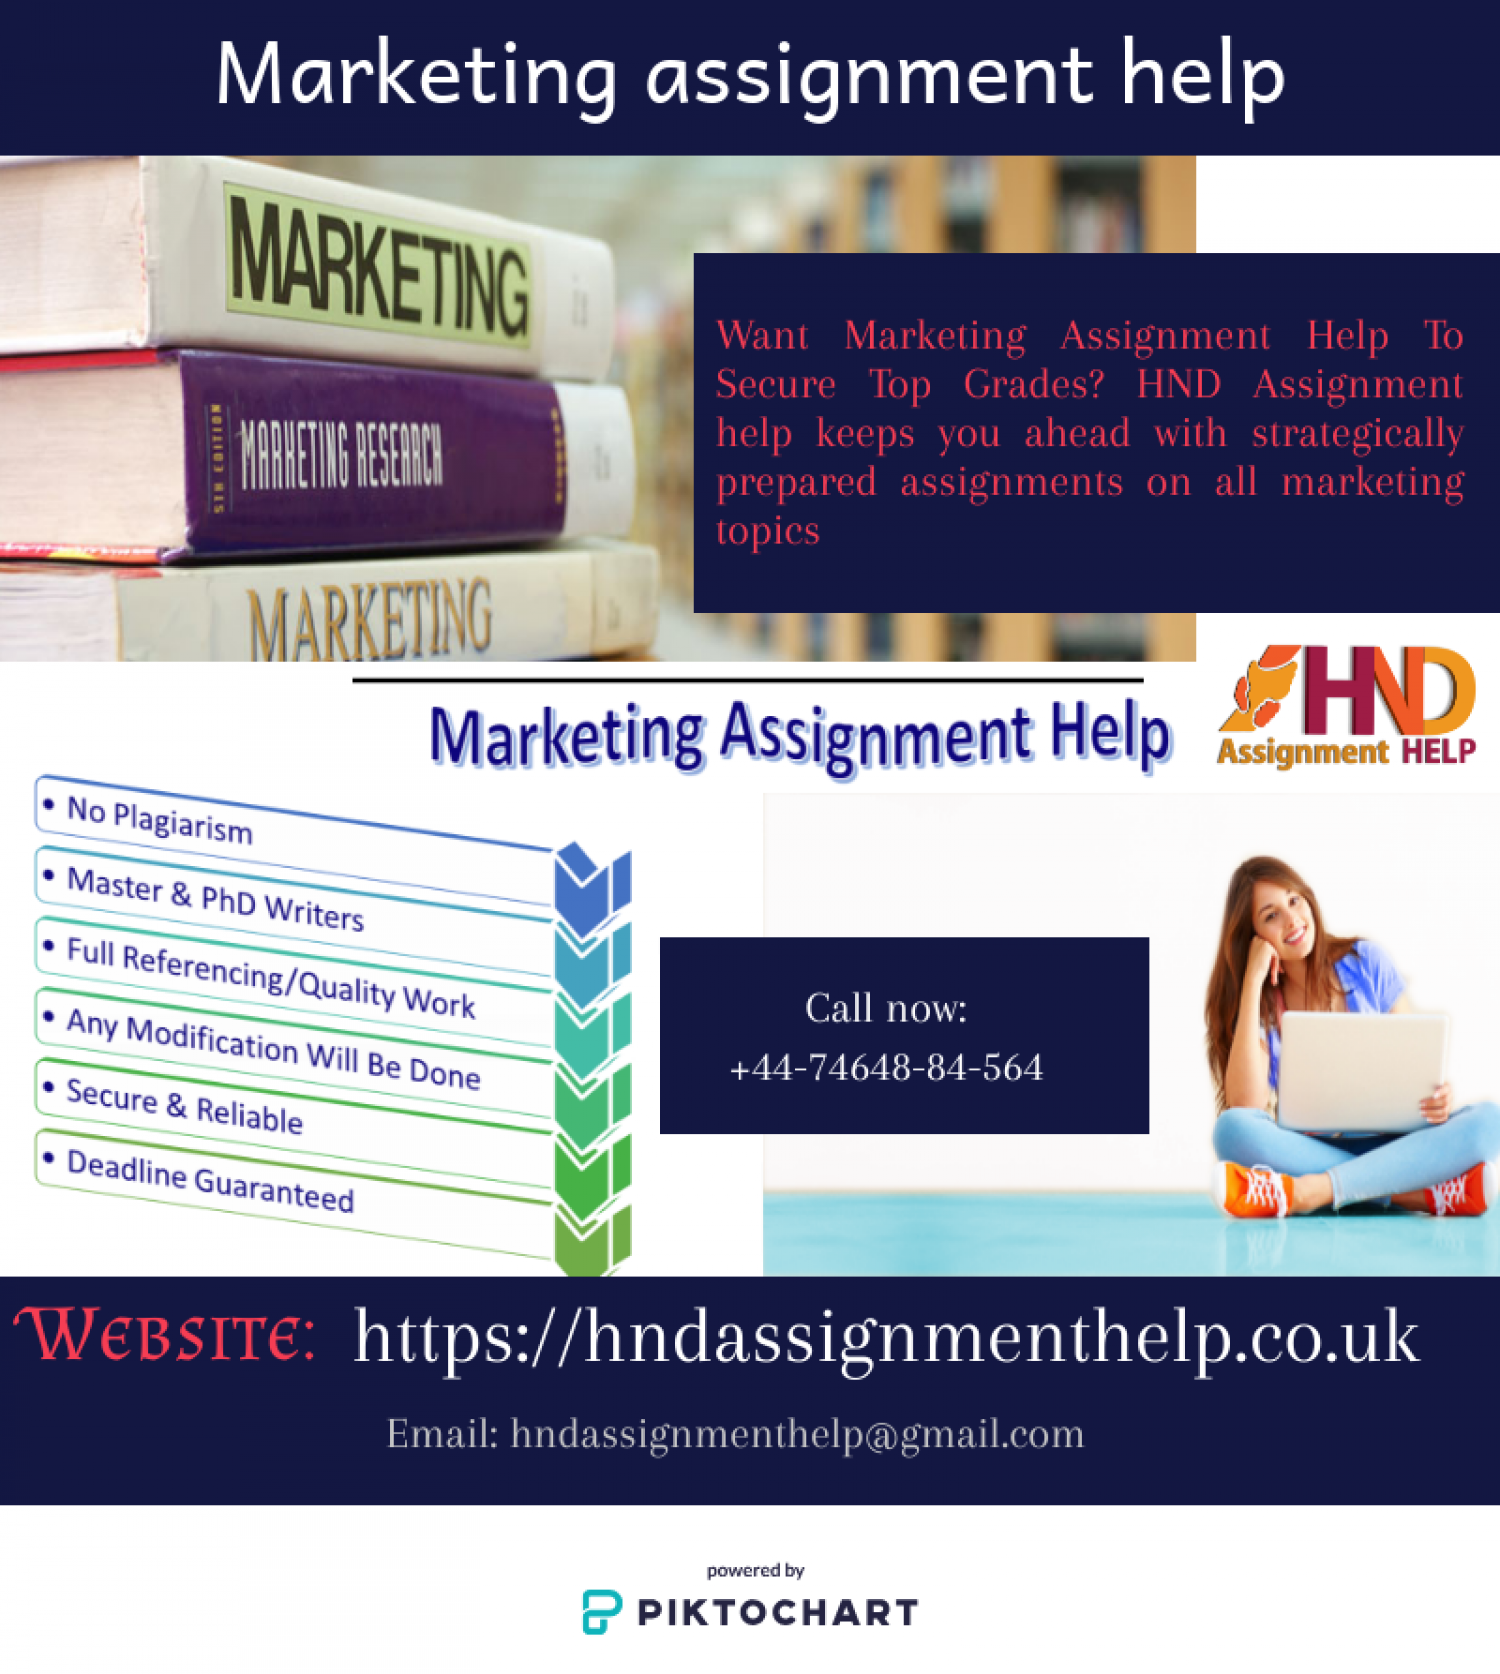 Marketing assignment help Infographic